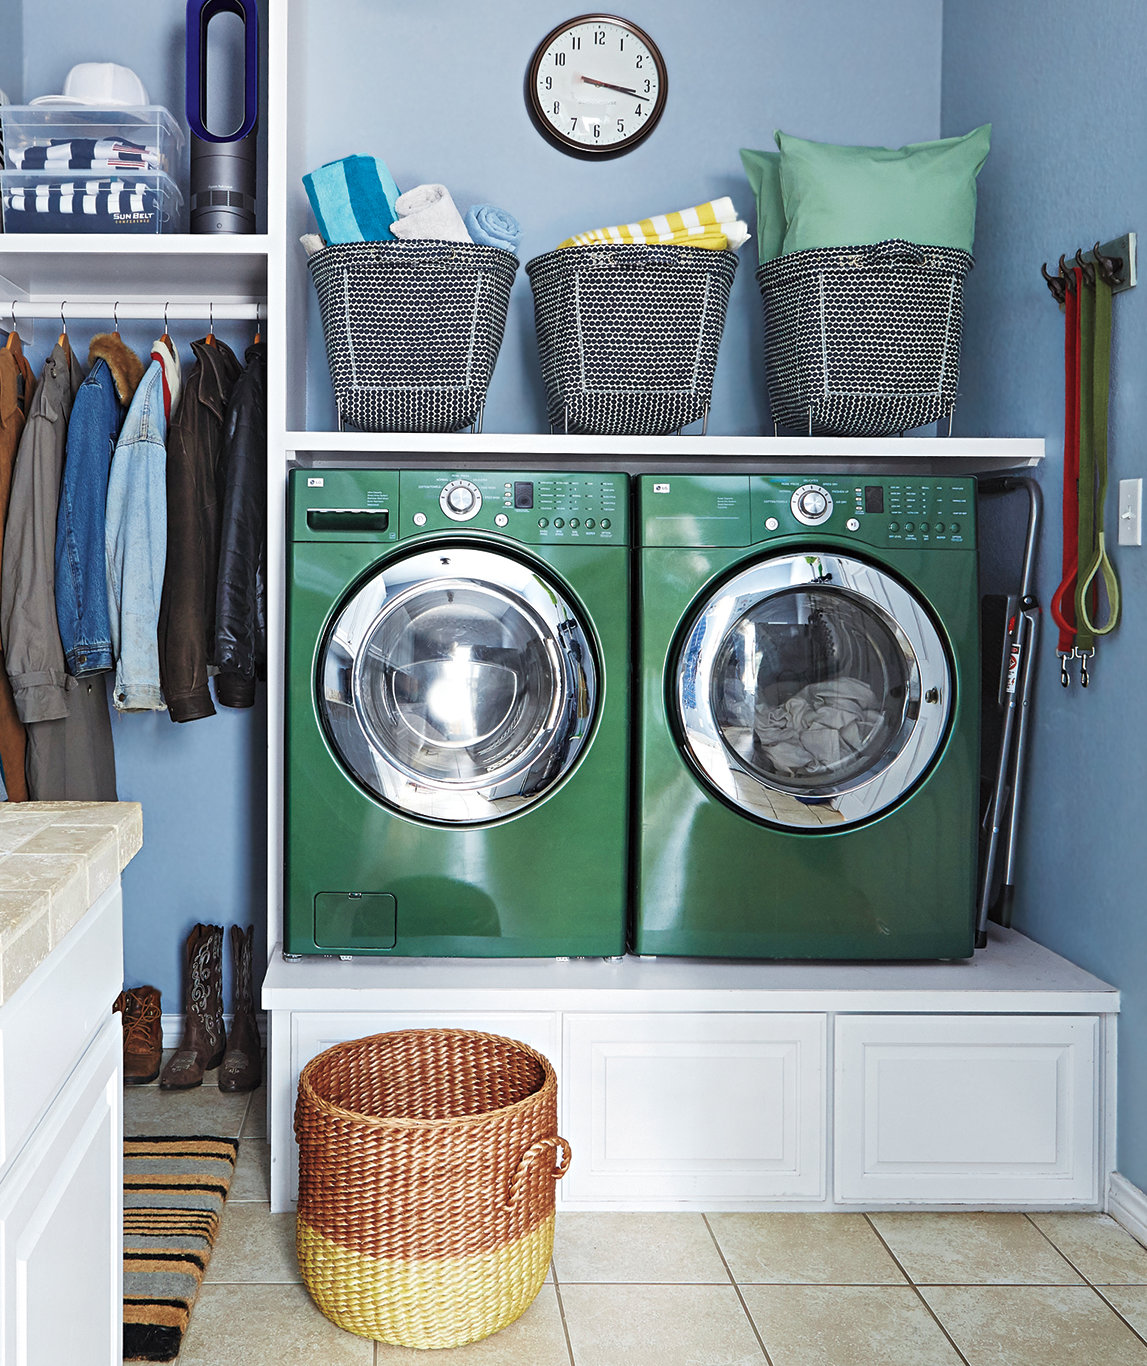 washing-machine-cleaning-tips